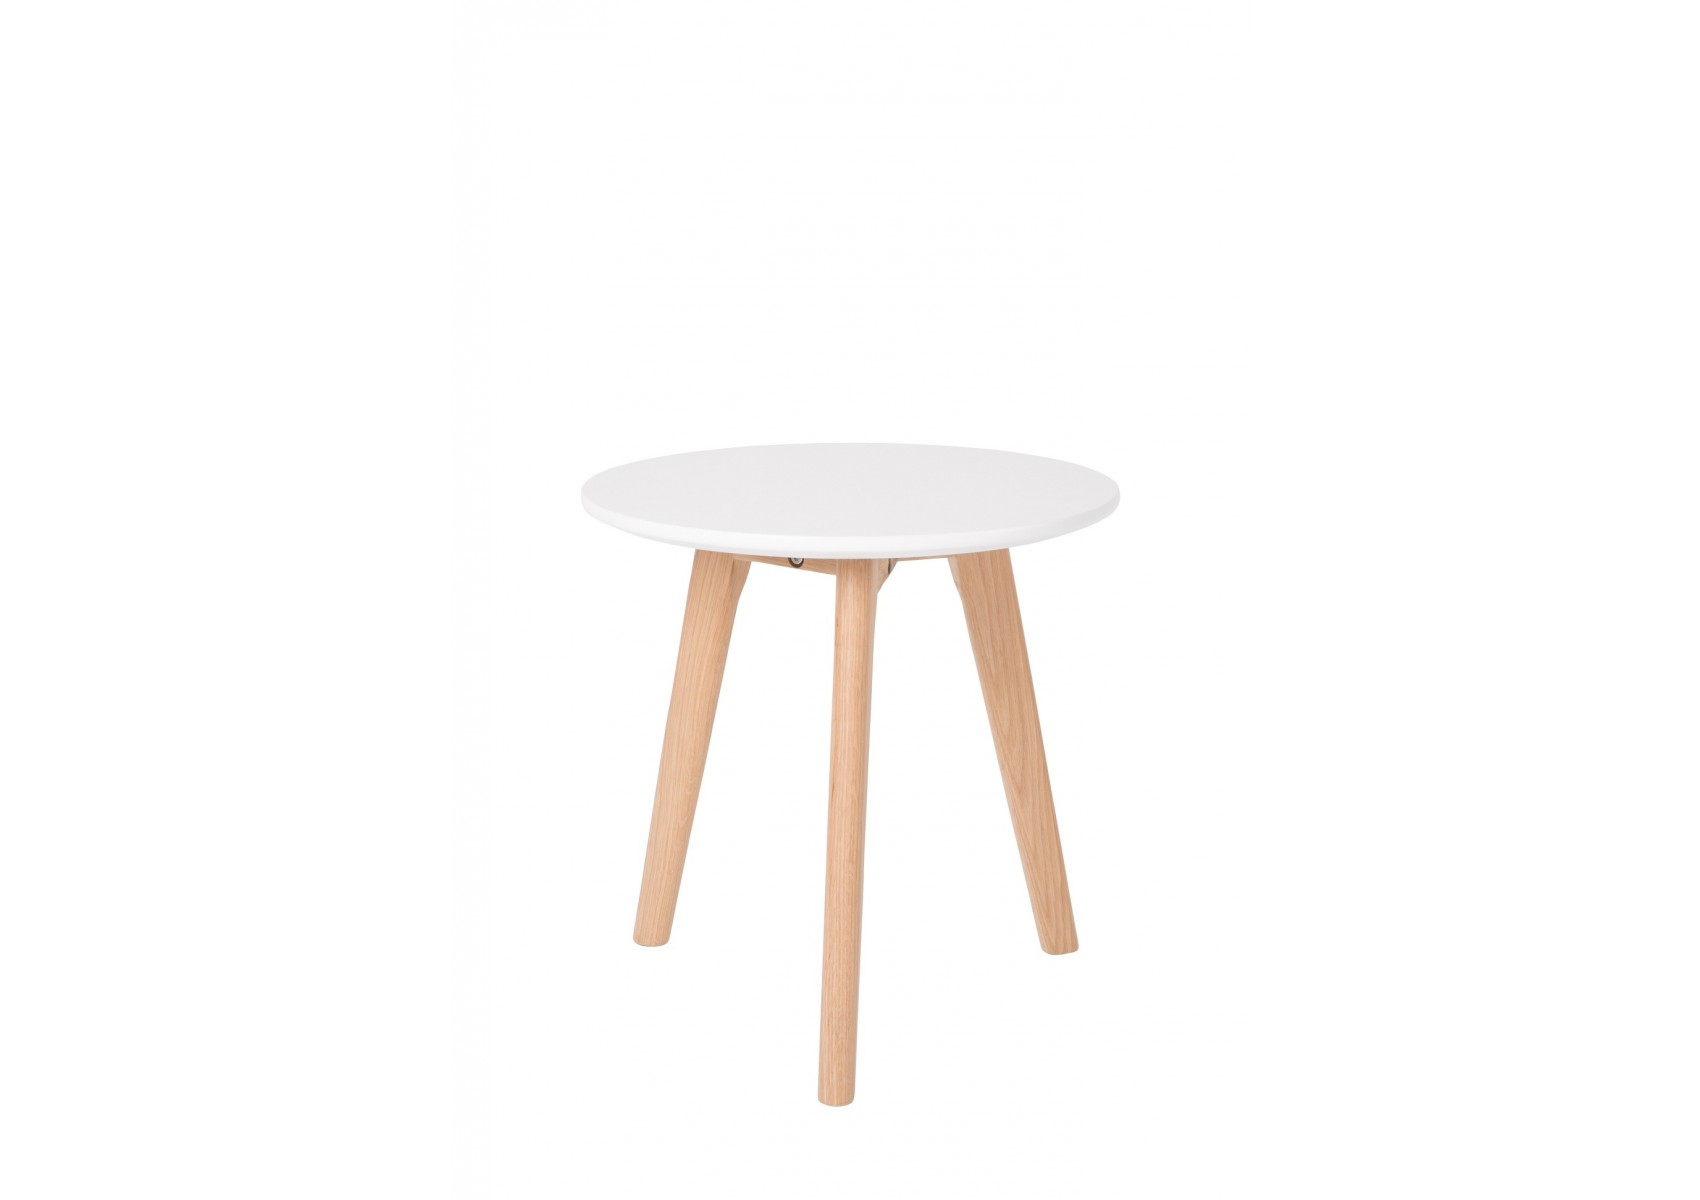 Tables basses scandinave BODINE set de 2 Boite à design